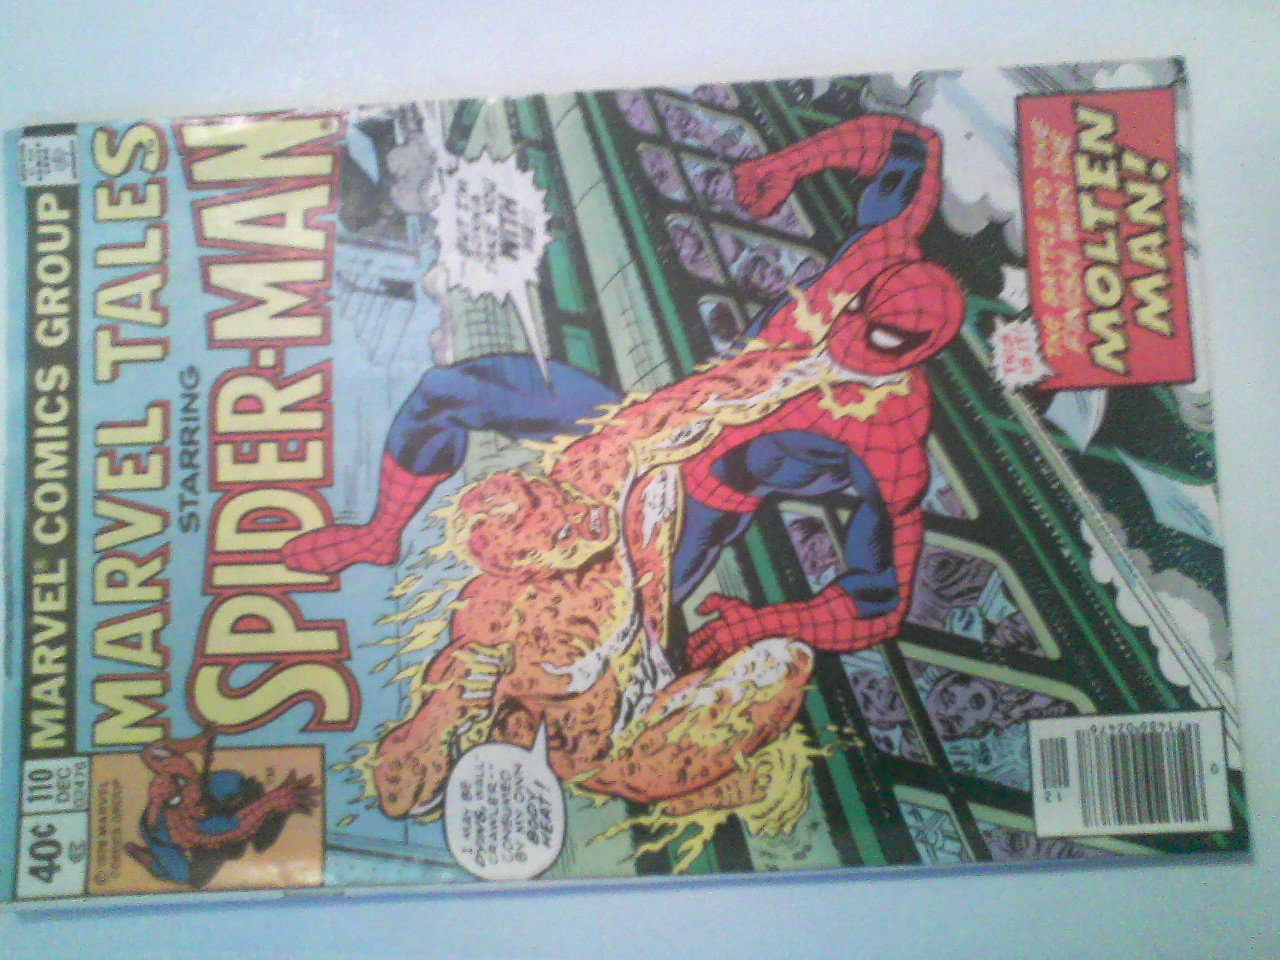 Marvel Tales #110 The battle to the finish with The Molten Man!